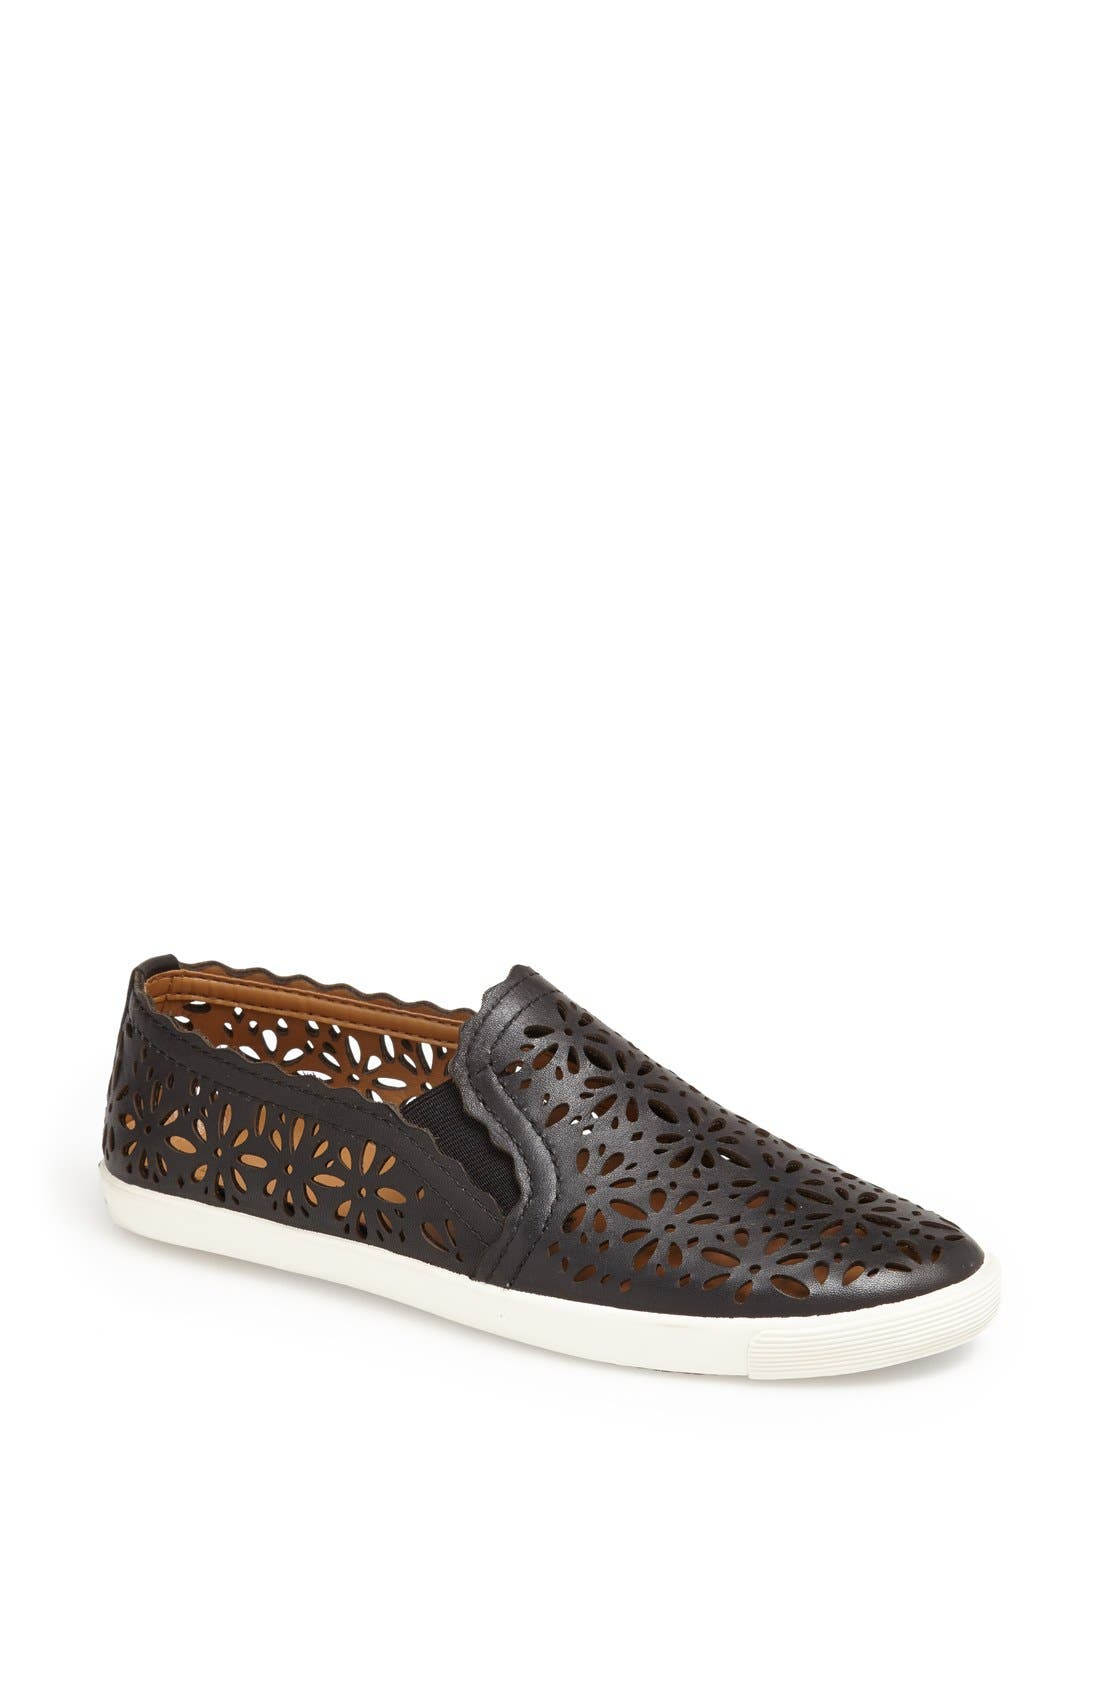 AERIN,                             'Murex' Perforated Slip-On Sneaker,                             Main thumbnail 1, color,                             001